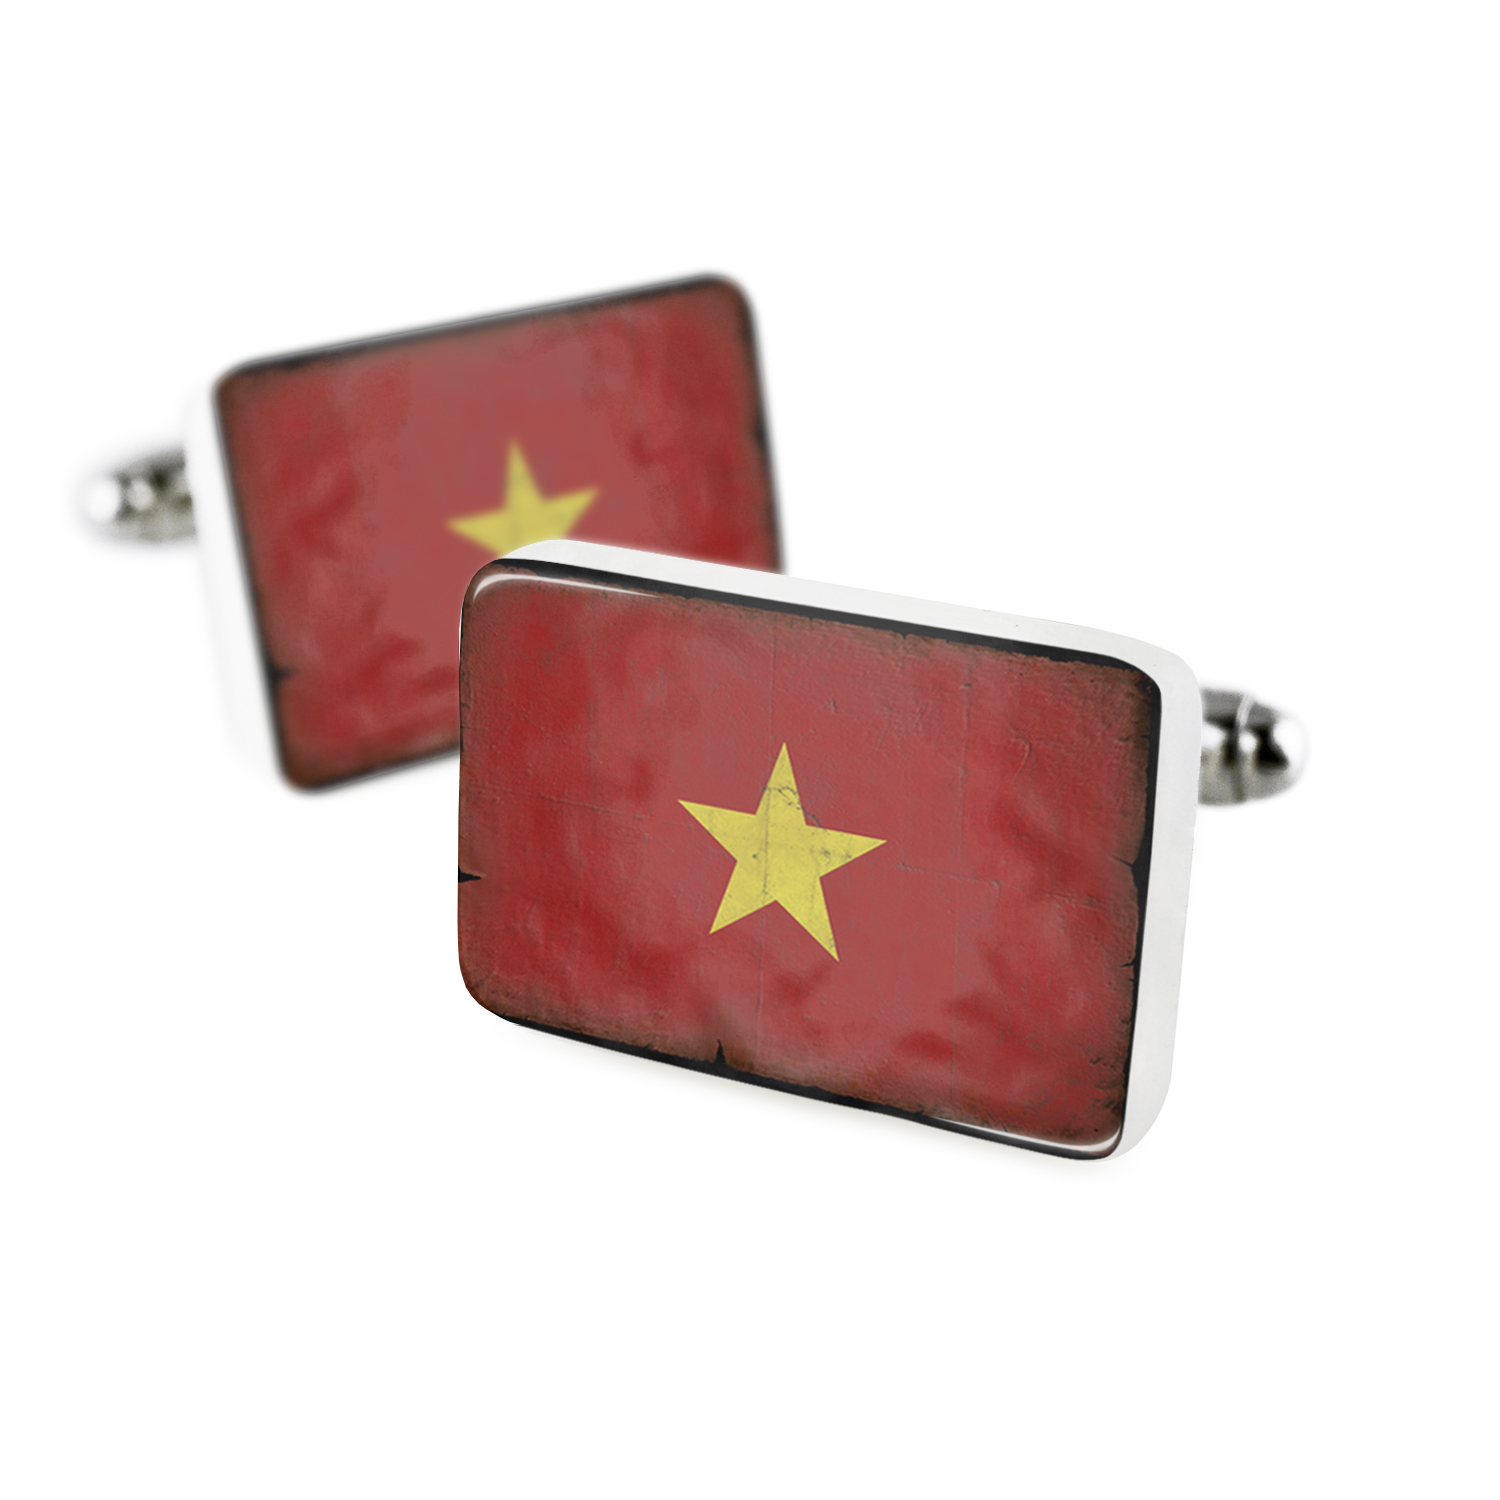 Cufflinks Vietnam Flag with a vintage lookPorcelain Ceramic NEONBLOND by NEONBLOND